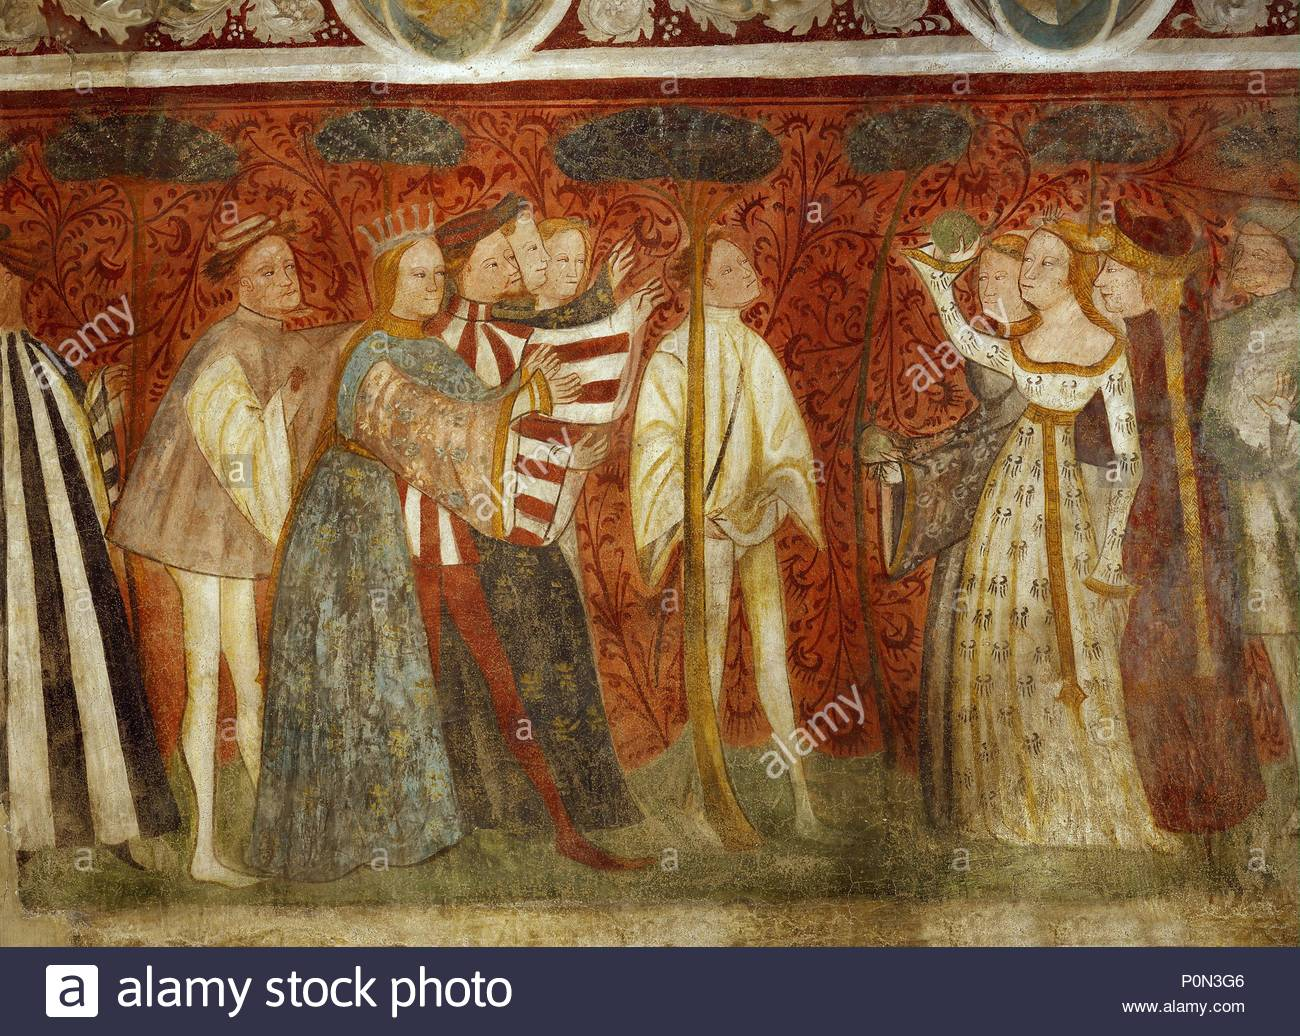 Murals in the knights\'hall of Runkelstein castle show a ballgame in ...